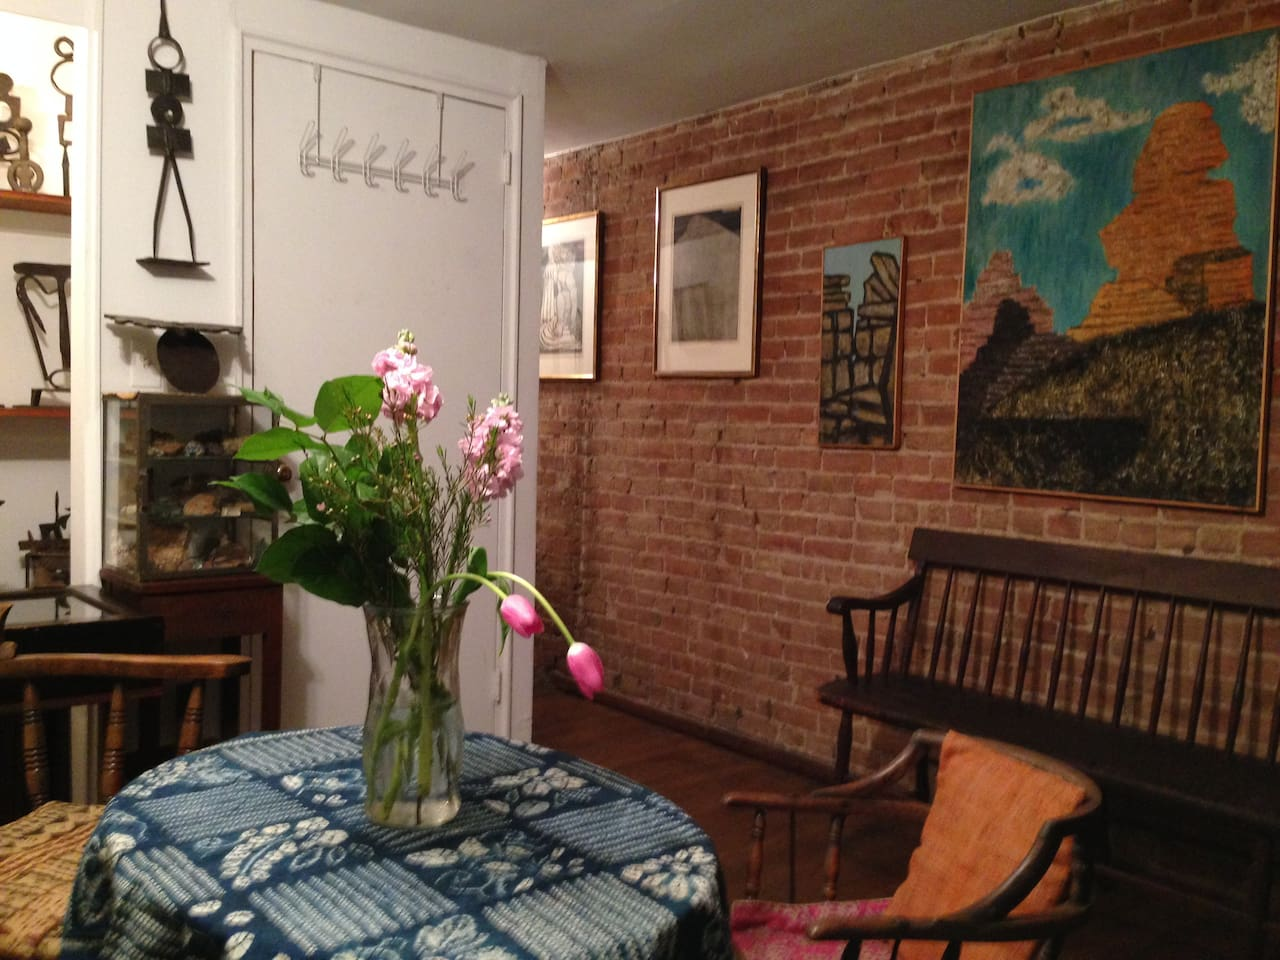 CHELSEA BROWNSTONE 1BRM GARDEN APT - Apartments for Rent in New York ...